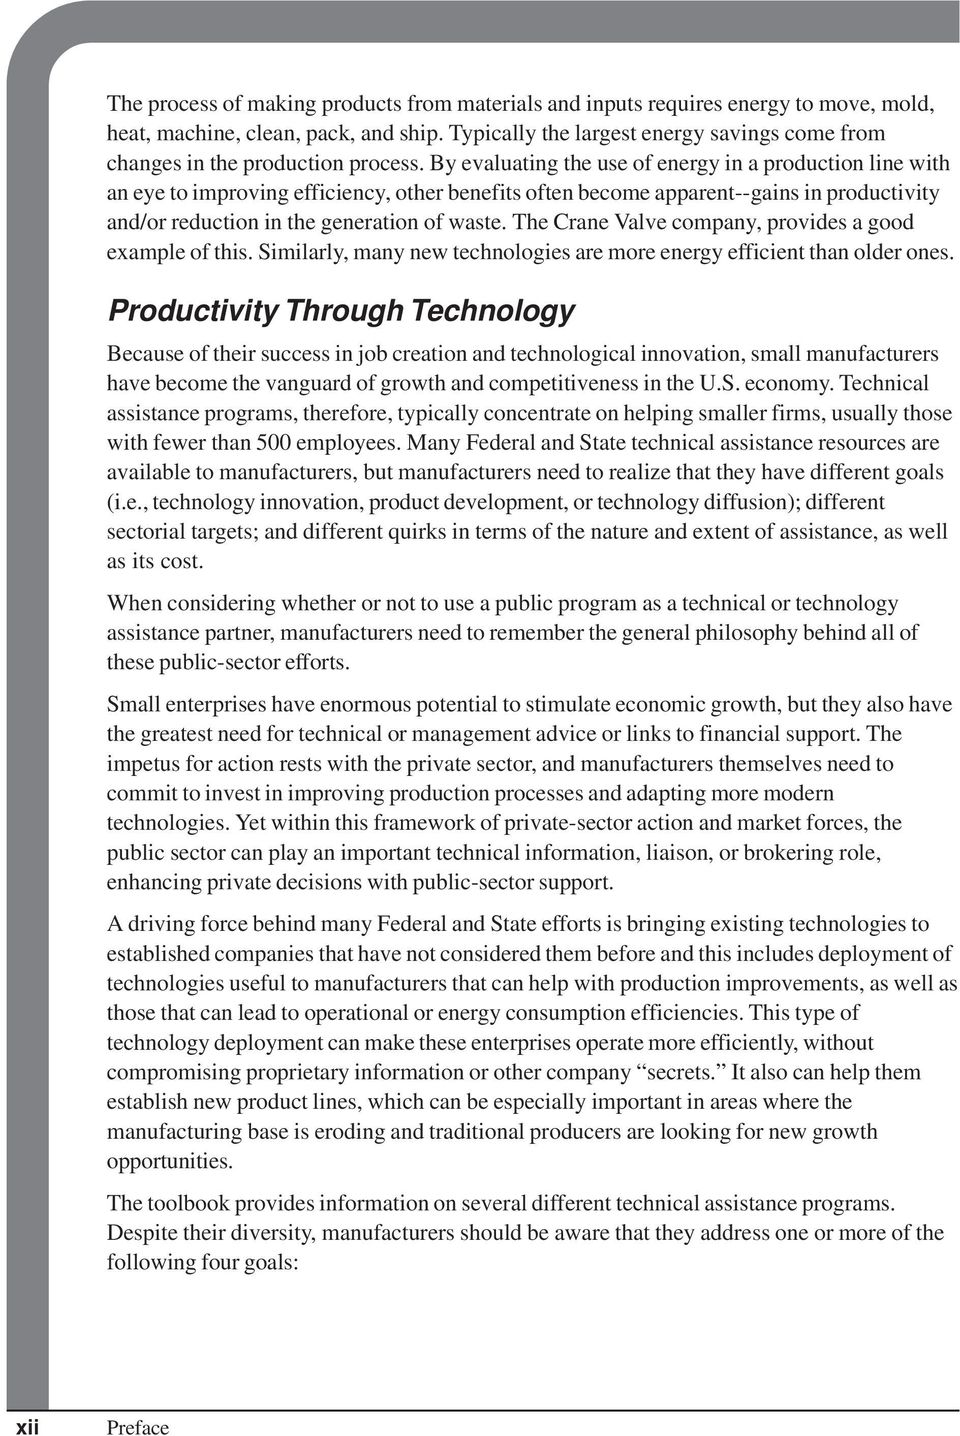 By evaluating the use of energy in a production line with an eye to improving efficiency, other benefits often become apparent--gains in productivity and/or reduction in the generation of waste.